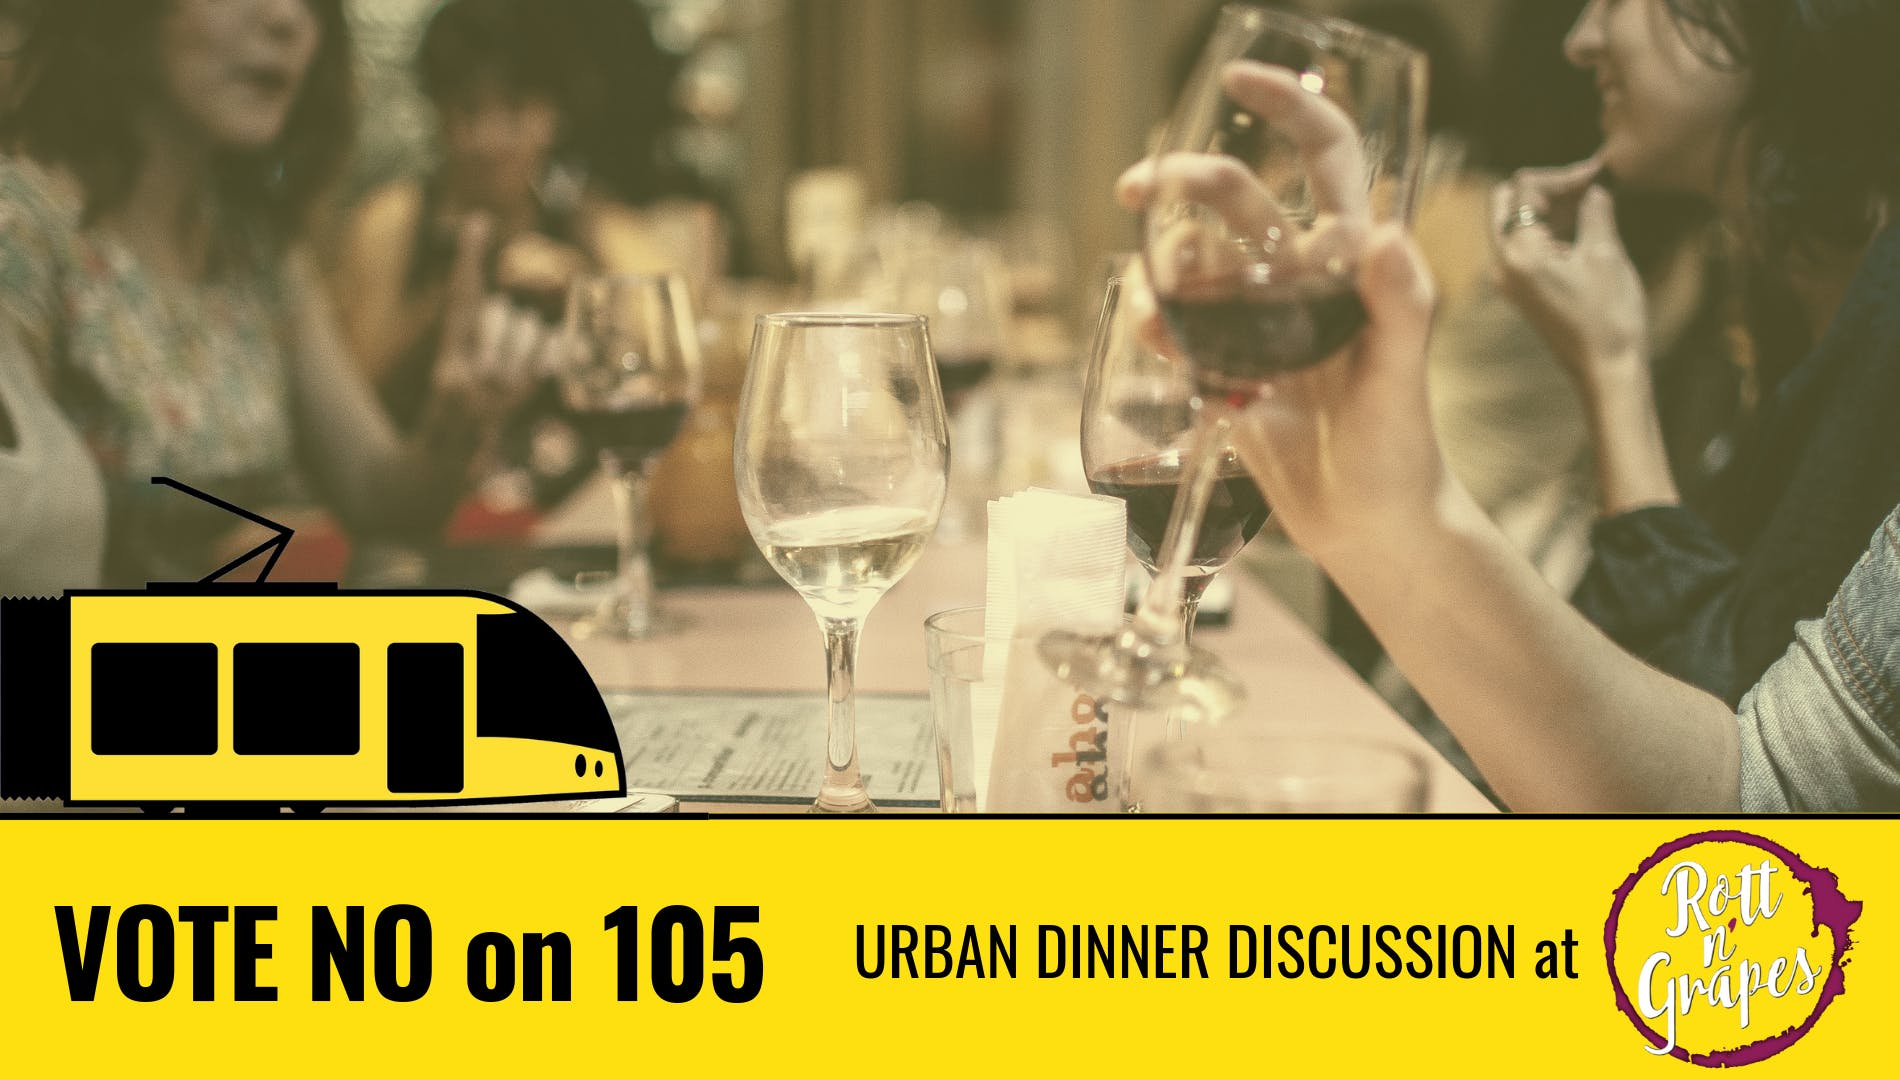 Urban Dinner Discussion: NO on 105